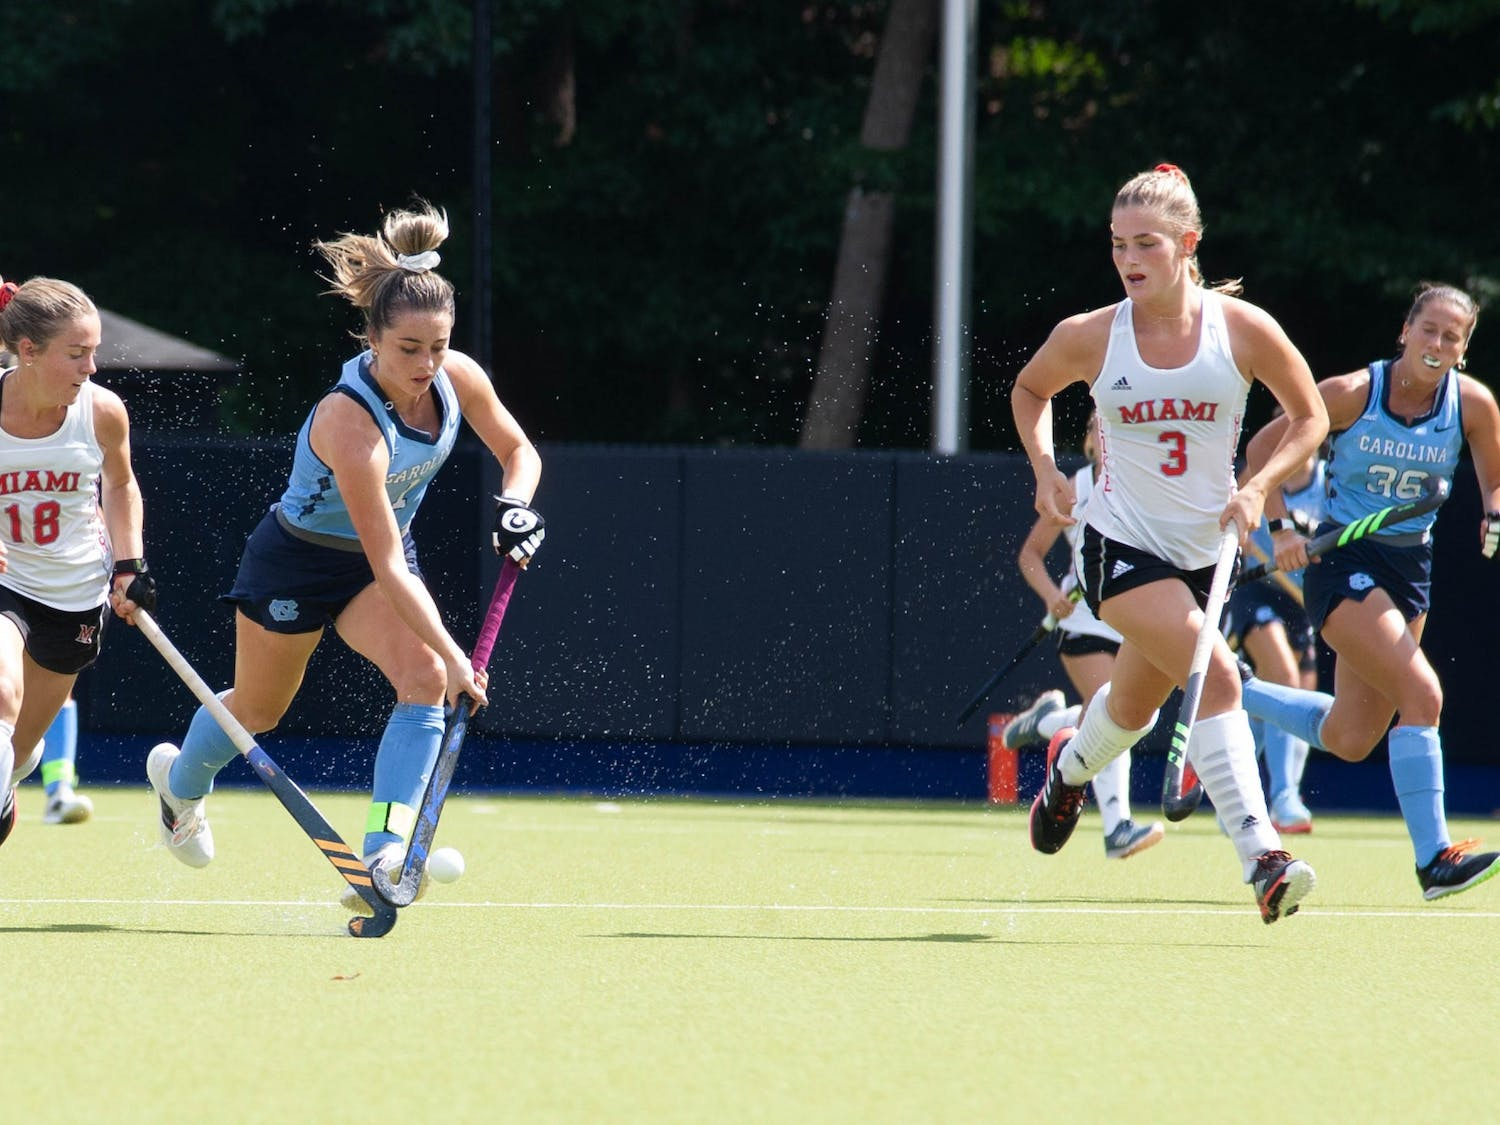 UNC senior forward Erin Matson (1) dribbles the ball during the field hockey game against the Miami Redhawks at Karen Shelton Stadium on Sept. 19, 2021. The Tar Heels defeated the Redhawks 7-2.